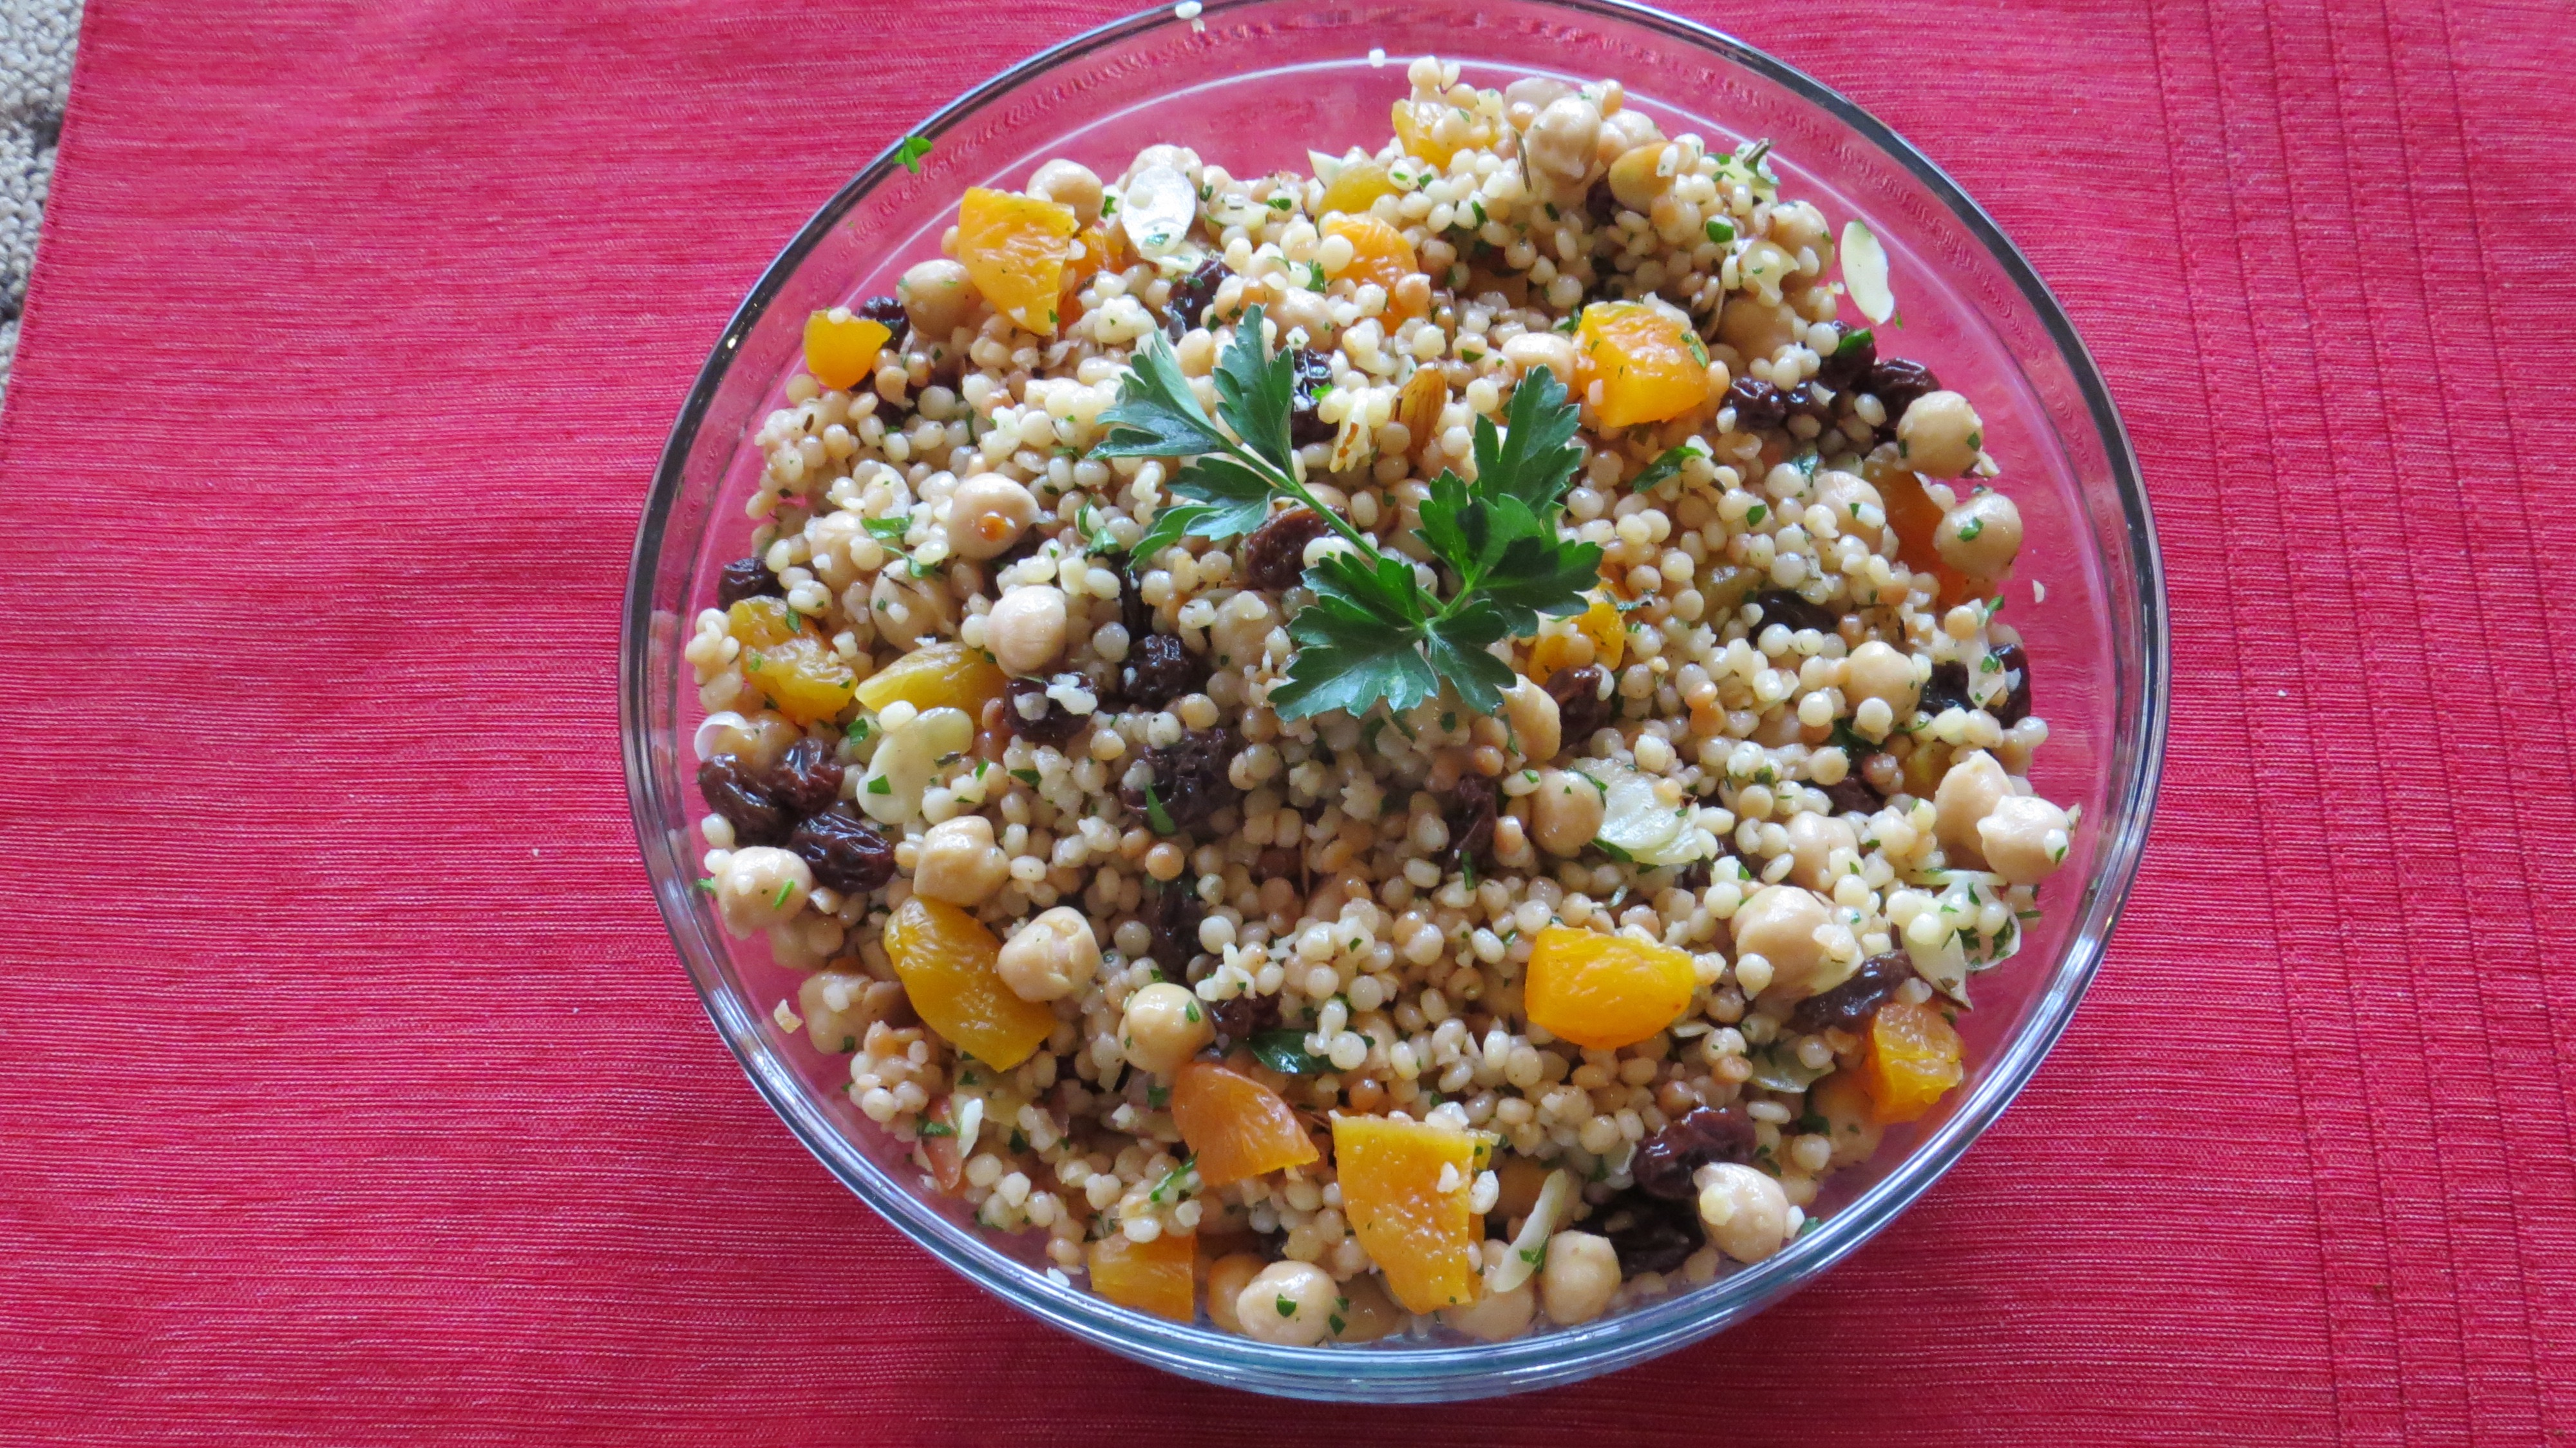 Moroccan-spiced Couscous